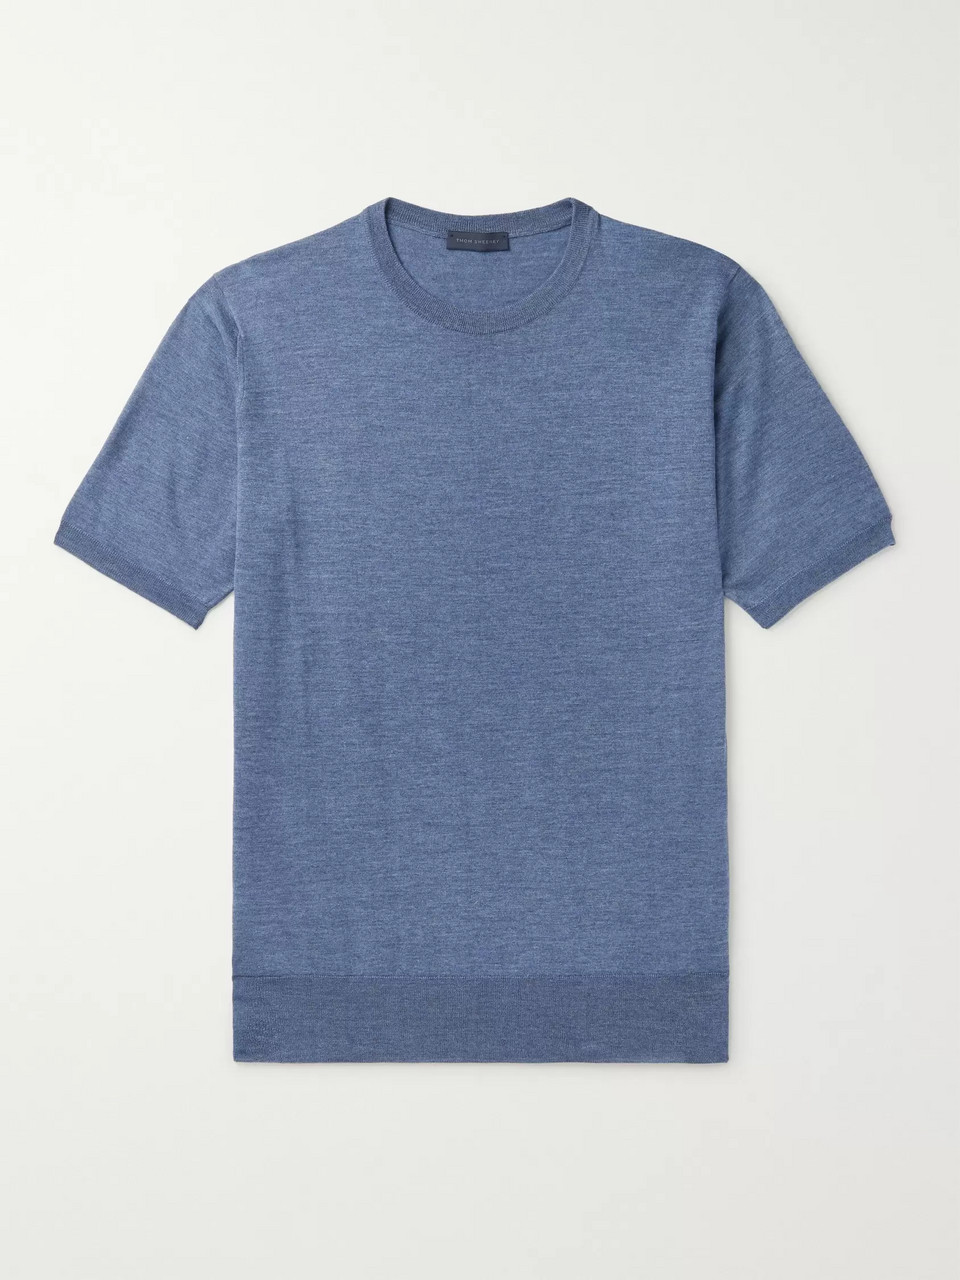 Thom Sweeney Slim-Fit Merino Wool T-Shirt